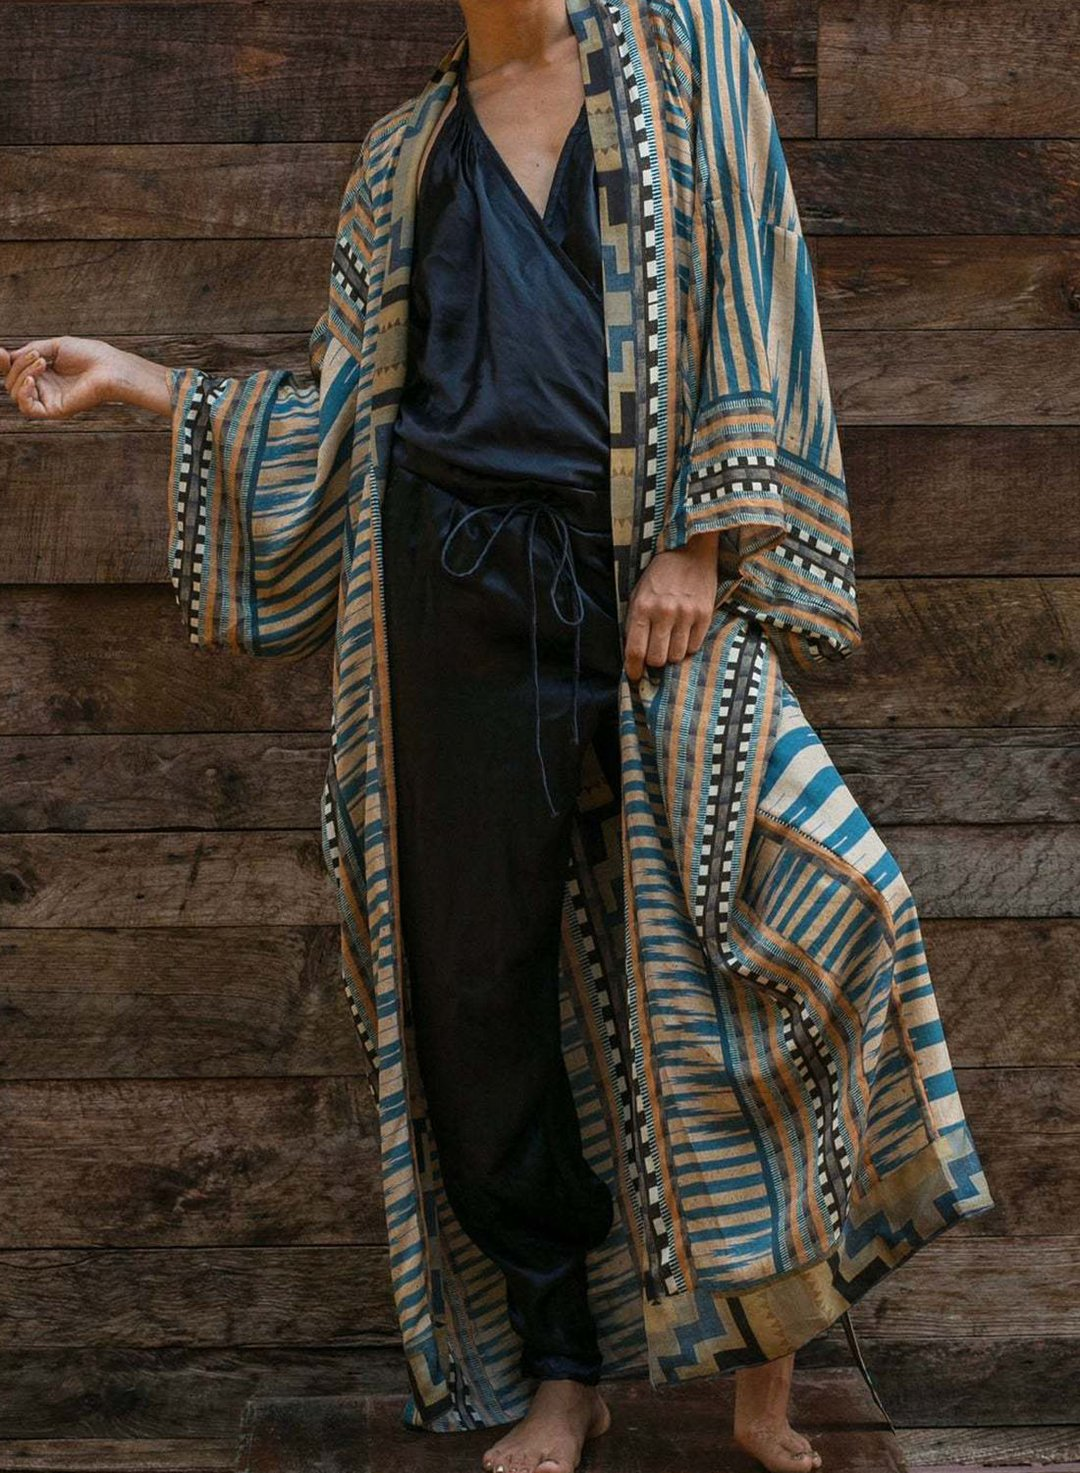 Blue Women's Cover-ups Tribal V Neck Long Sleeve Belt Waist Tie Open Front Boho Casual Daily Beach Cover-ups LC254555-5